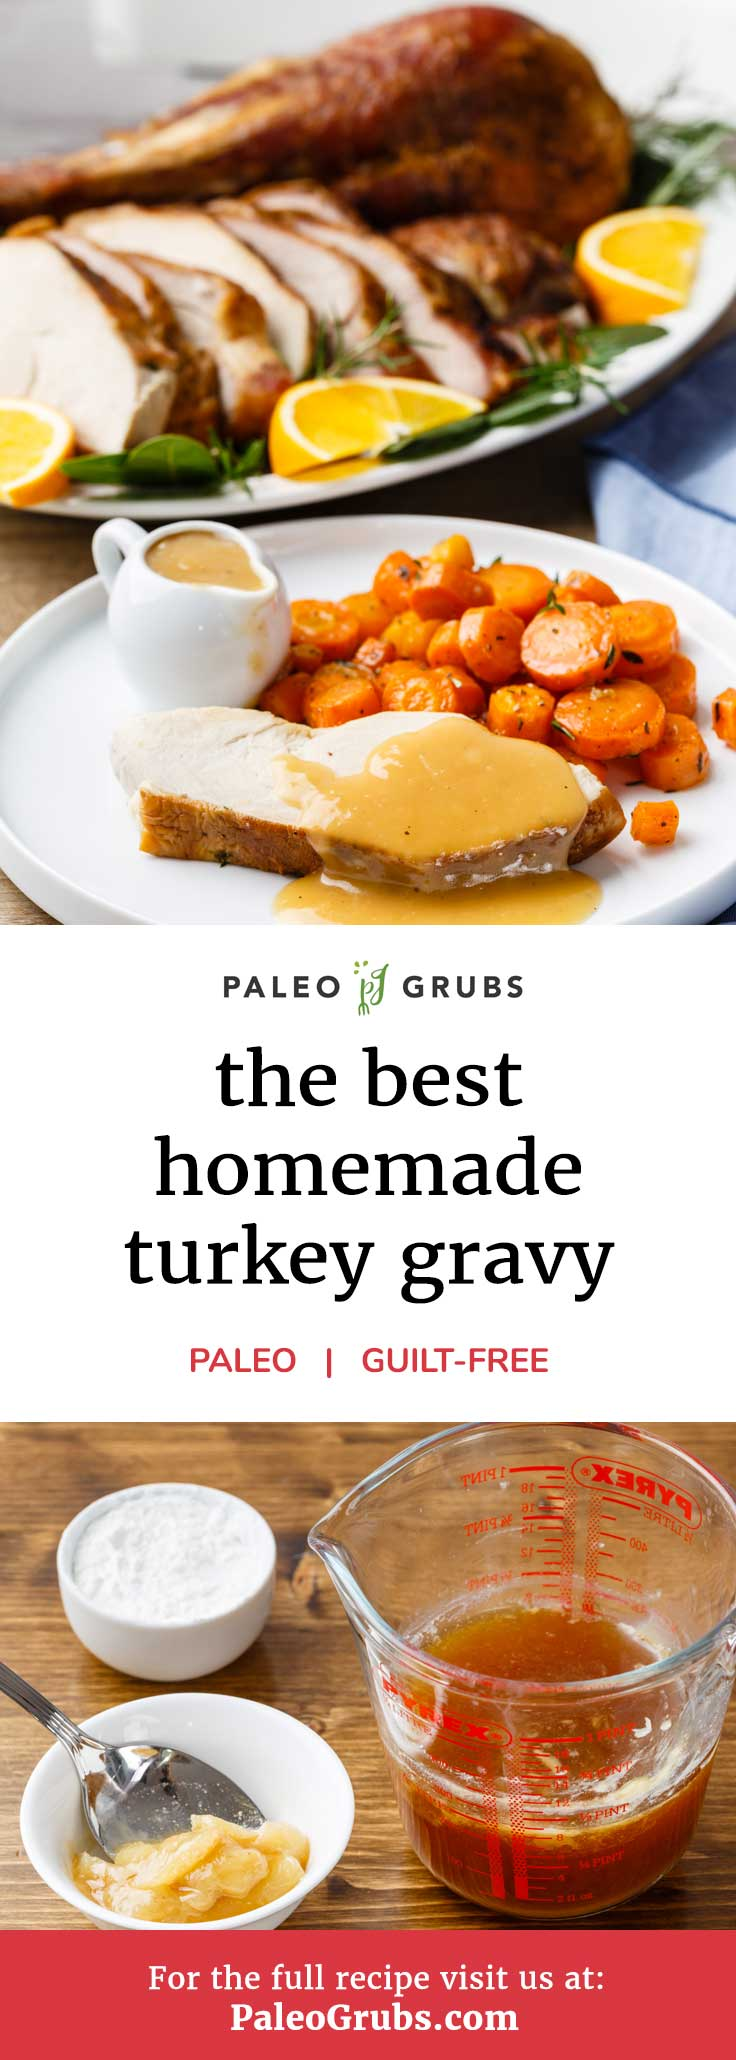 No turkey dinner would be complete without an amazing turkey gravy to go along with everything. This recipe makes what is without a doubt the most perfect turkey gravy ever. You won't be able to resist dousing your turkey, stuffing, and veggies in this delightfully good gravy. It's so good that I would almost recommend making two batches -- it's sure to disappear quickly once your family members get a taste of it!